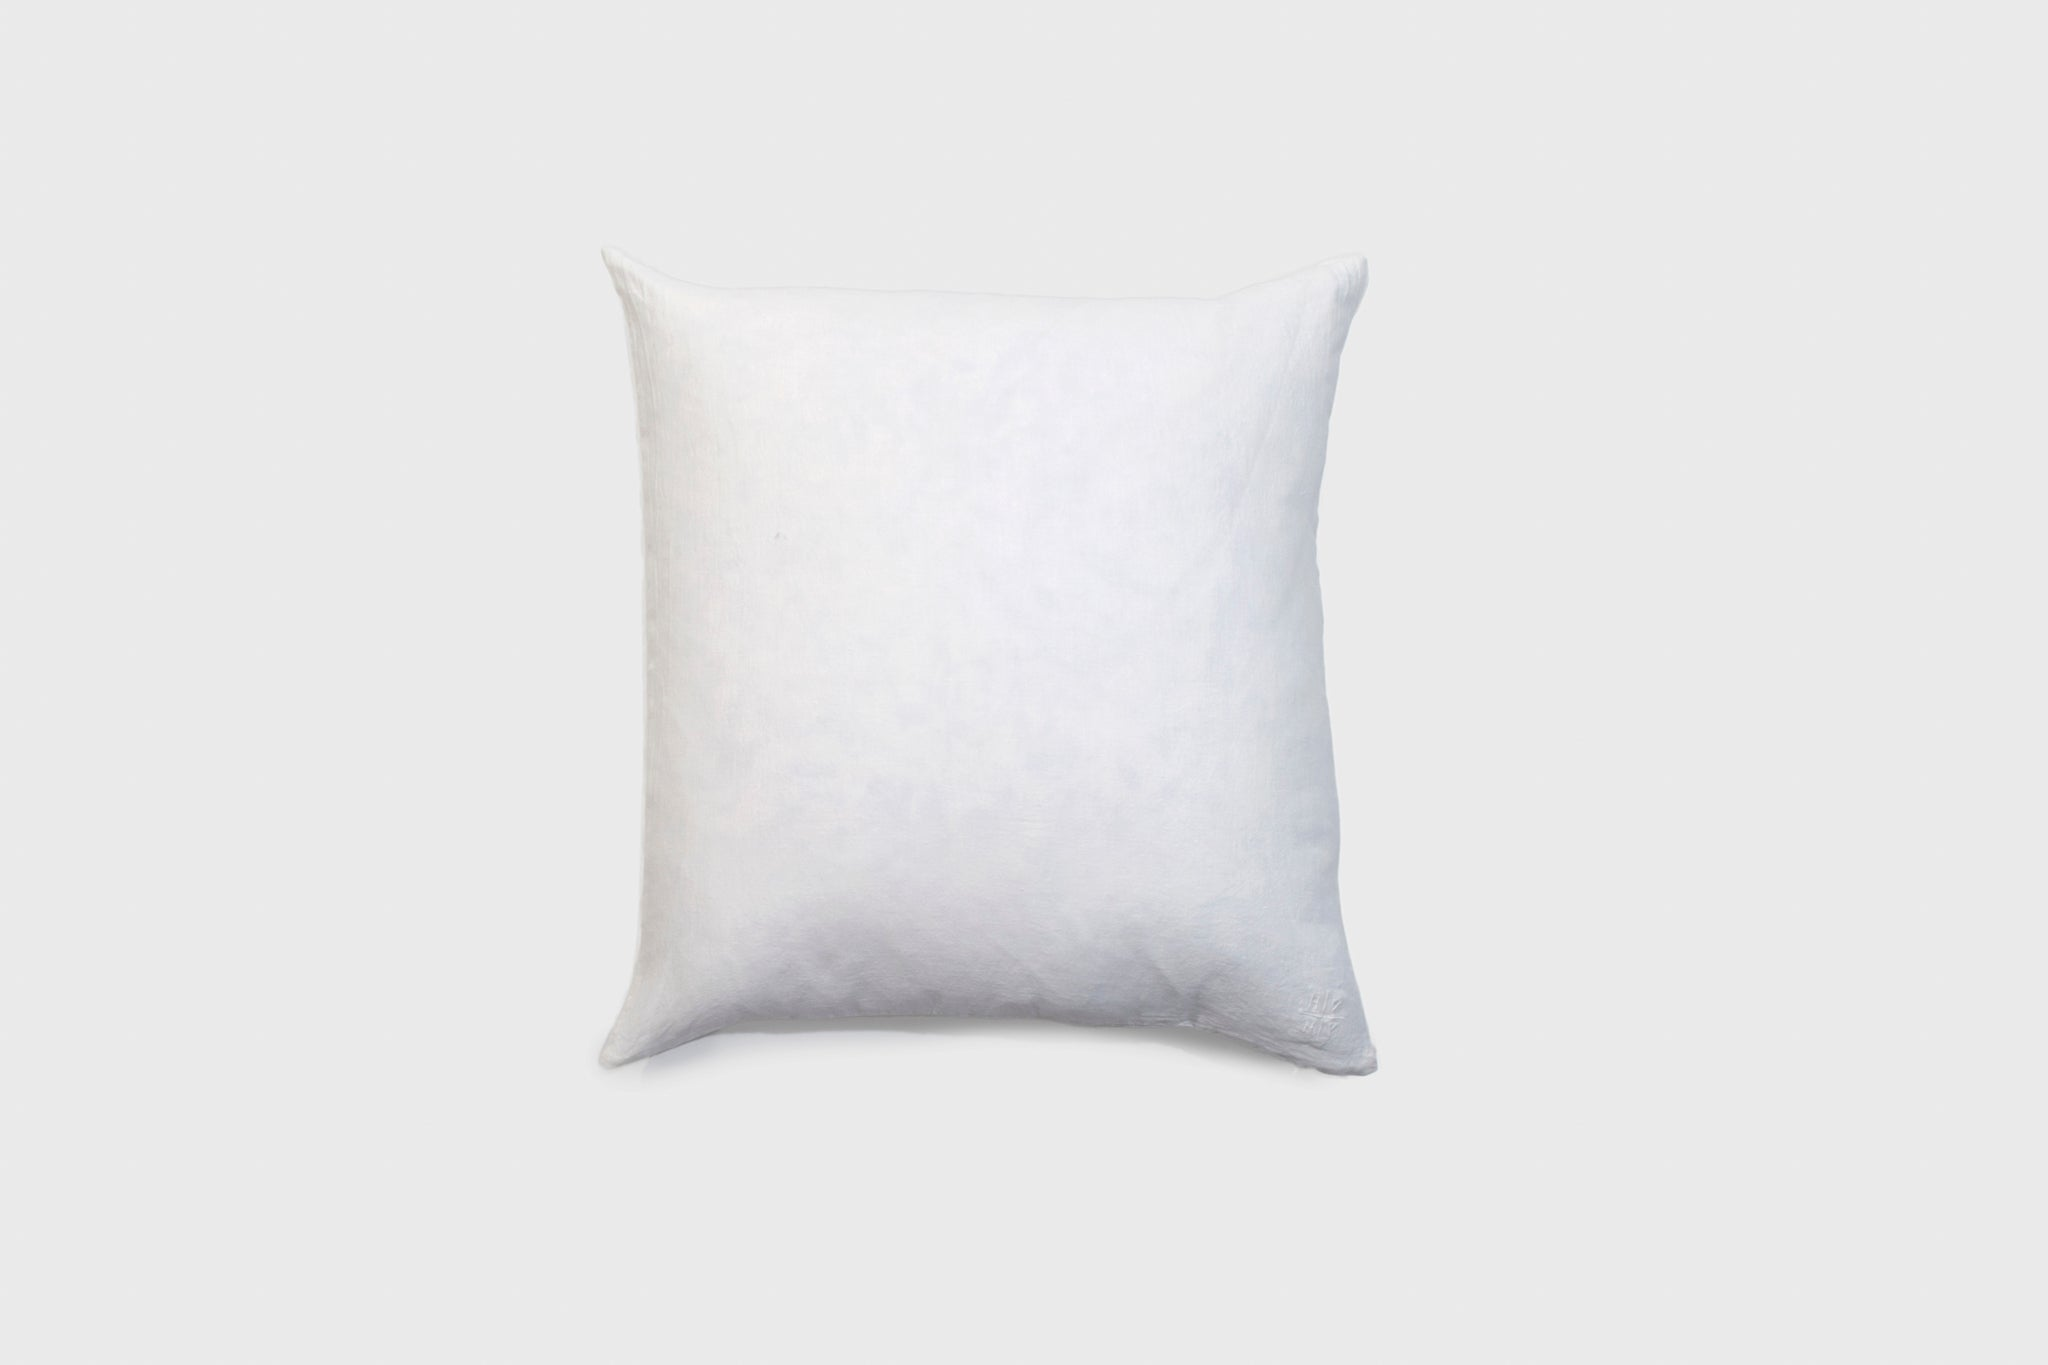 Simple Linen Pillow 22 x 22 White